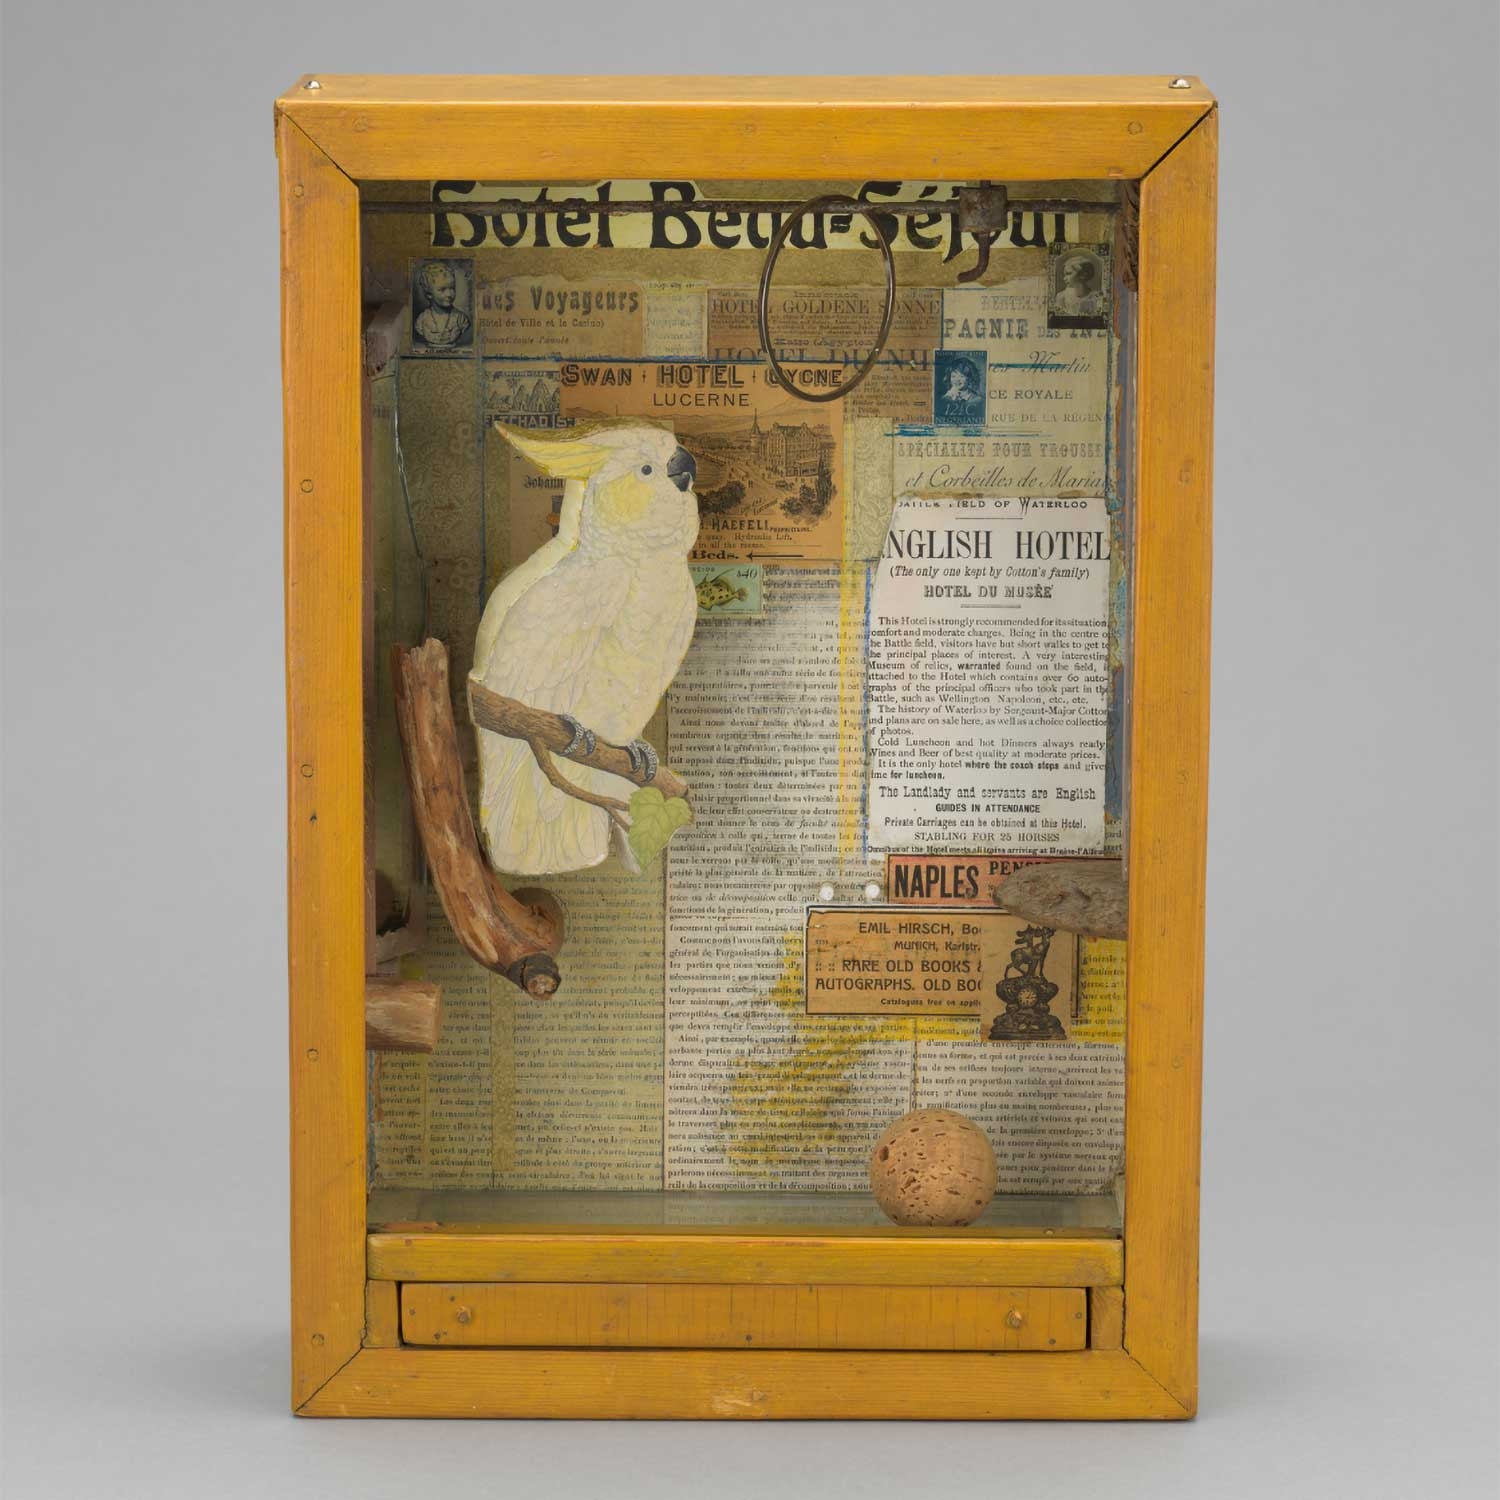 Untitled (Hotel Beau-Séjour)  by Joseph Cornell, c. 1954, mixed media assemblage, Collection of the Museum of Modern Art in New York.